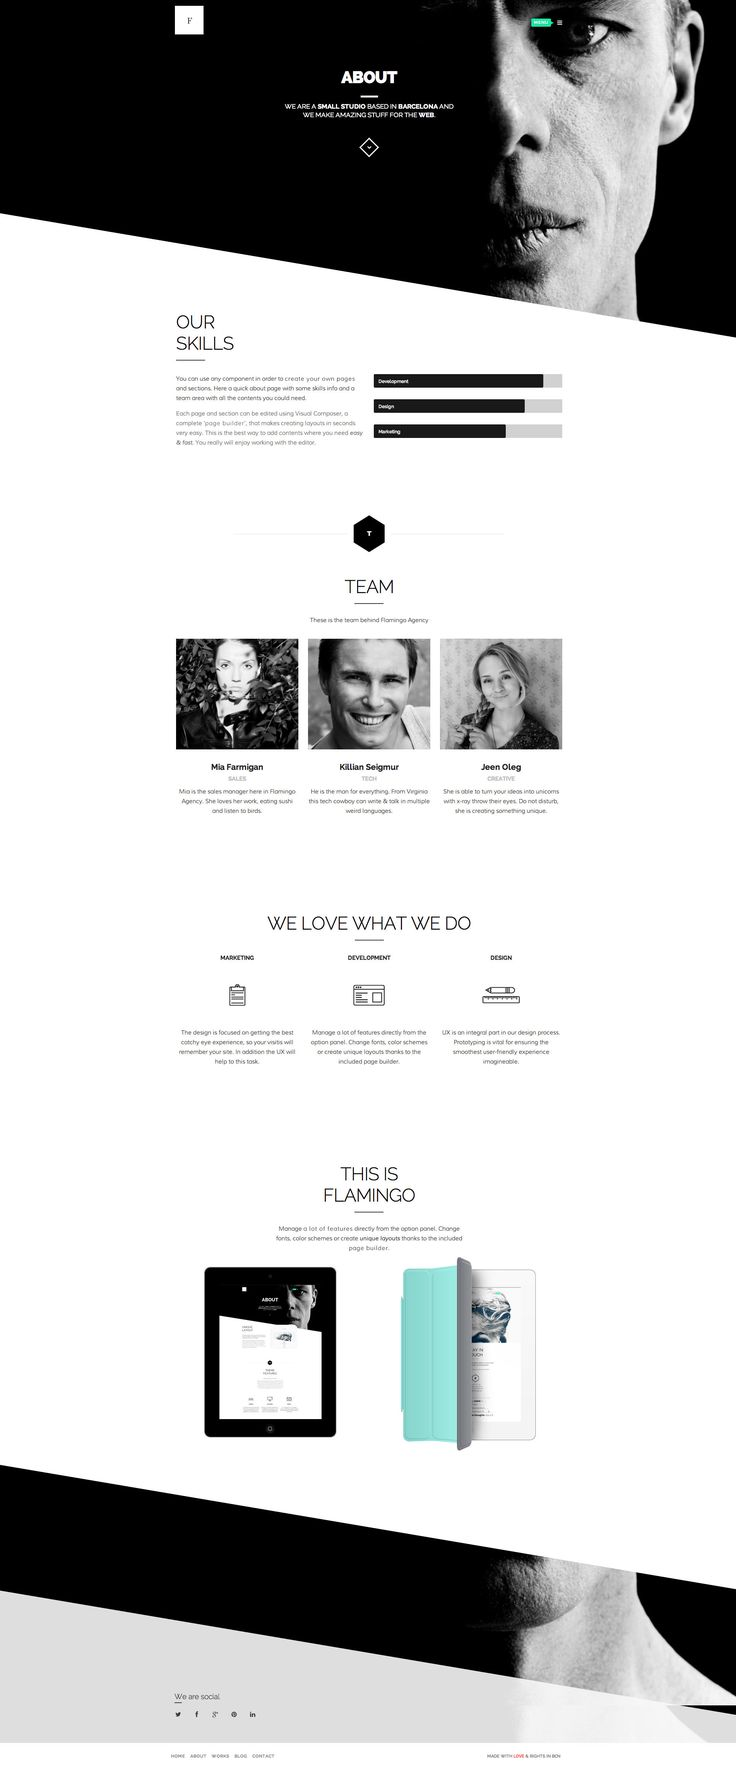 Flamingo - Agency & Freelance Portfolio Theme http://themeforest.net/item/flamingo-agency-freelance-portfolio-theme/6077145?ref=wpaw #portfolio #agency #freelance